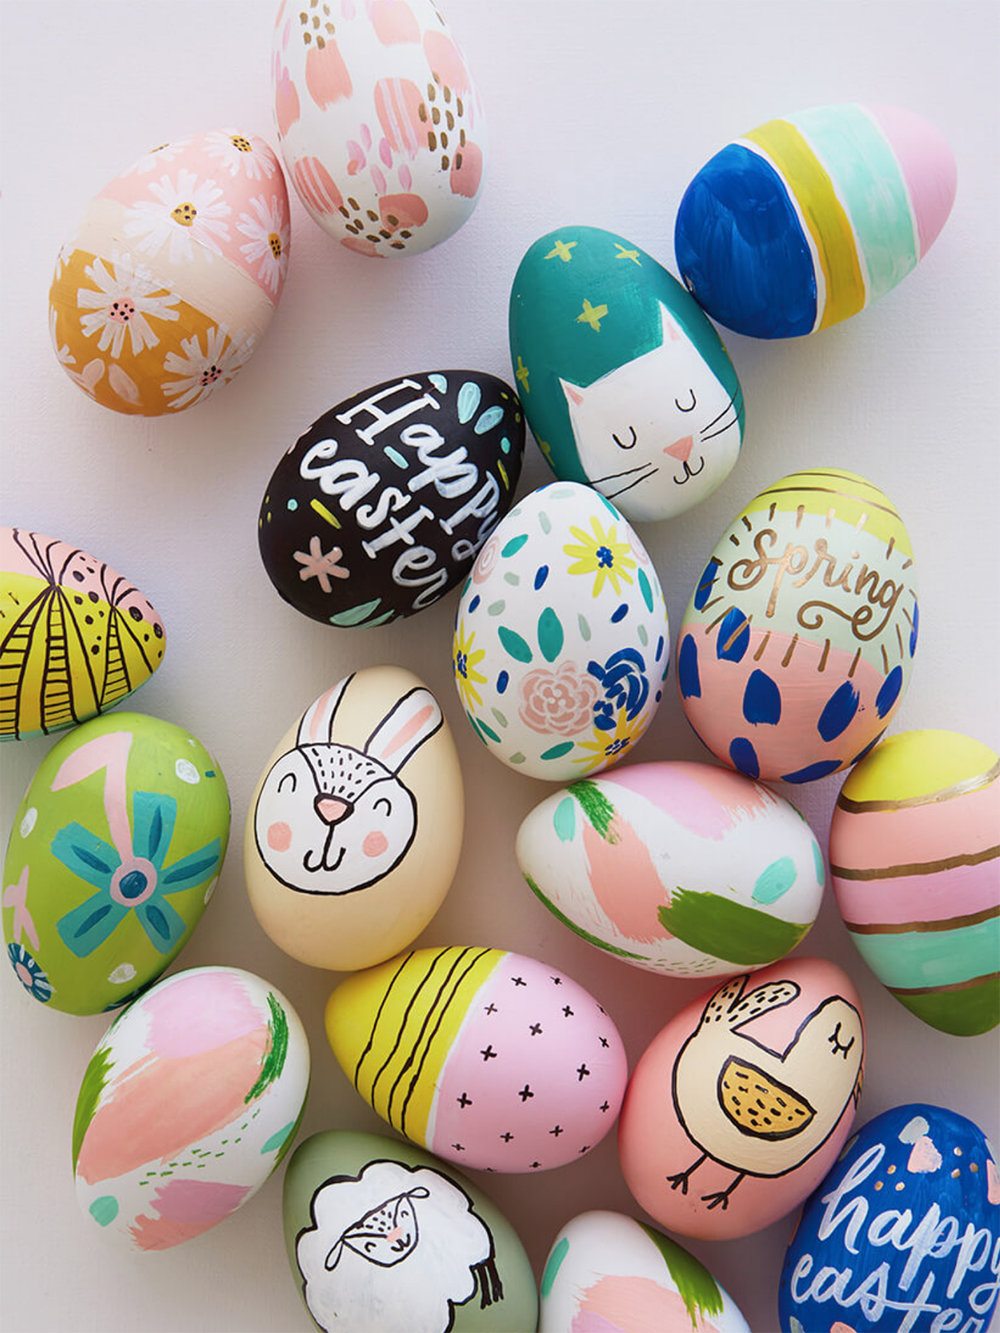 Creative-Easter-Egg-Decorating-6.jpg